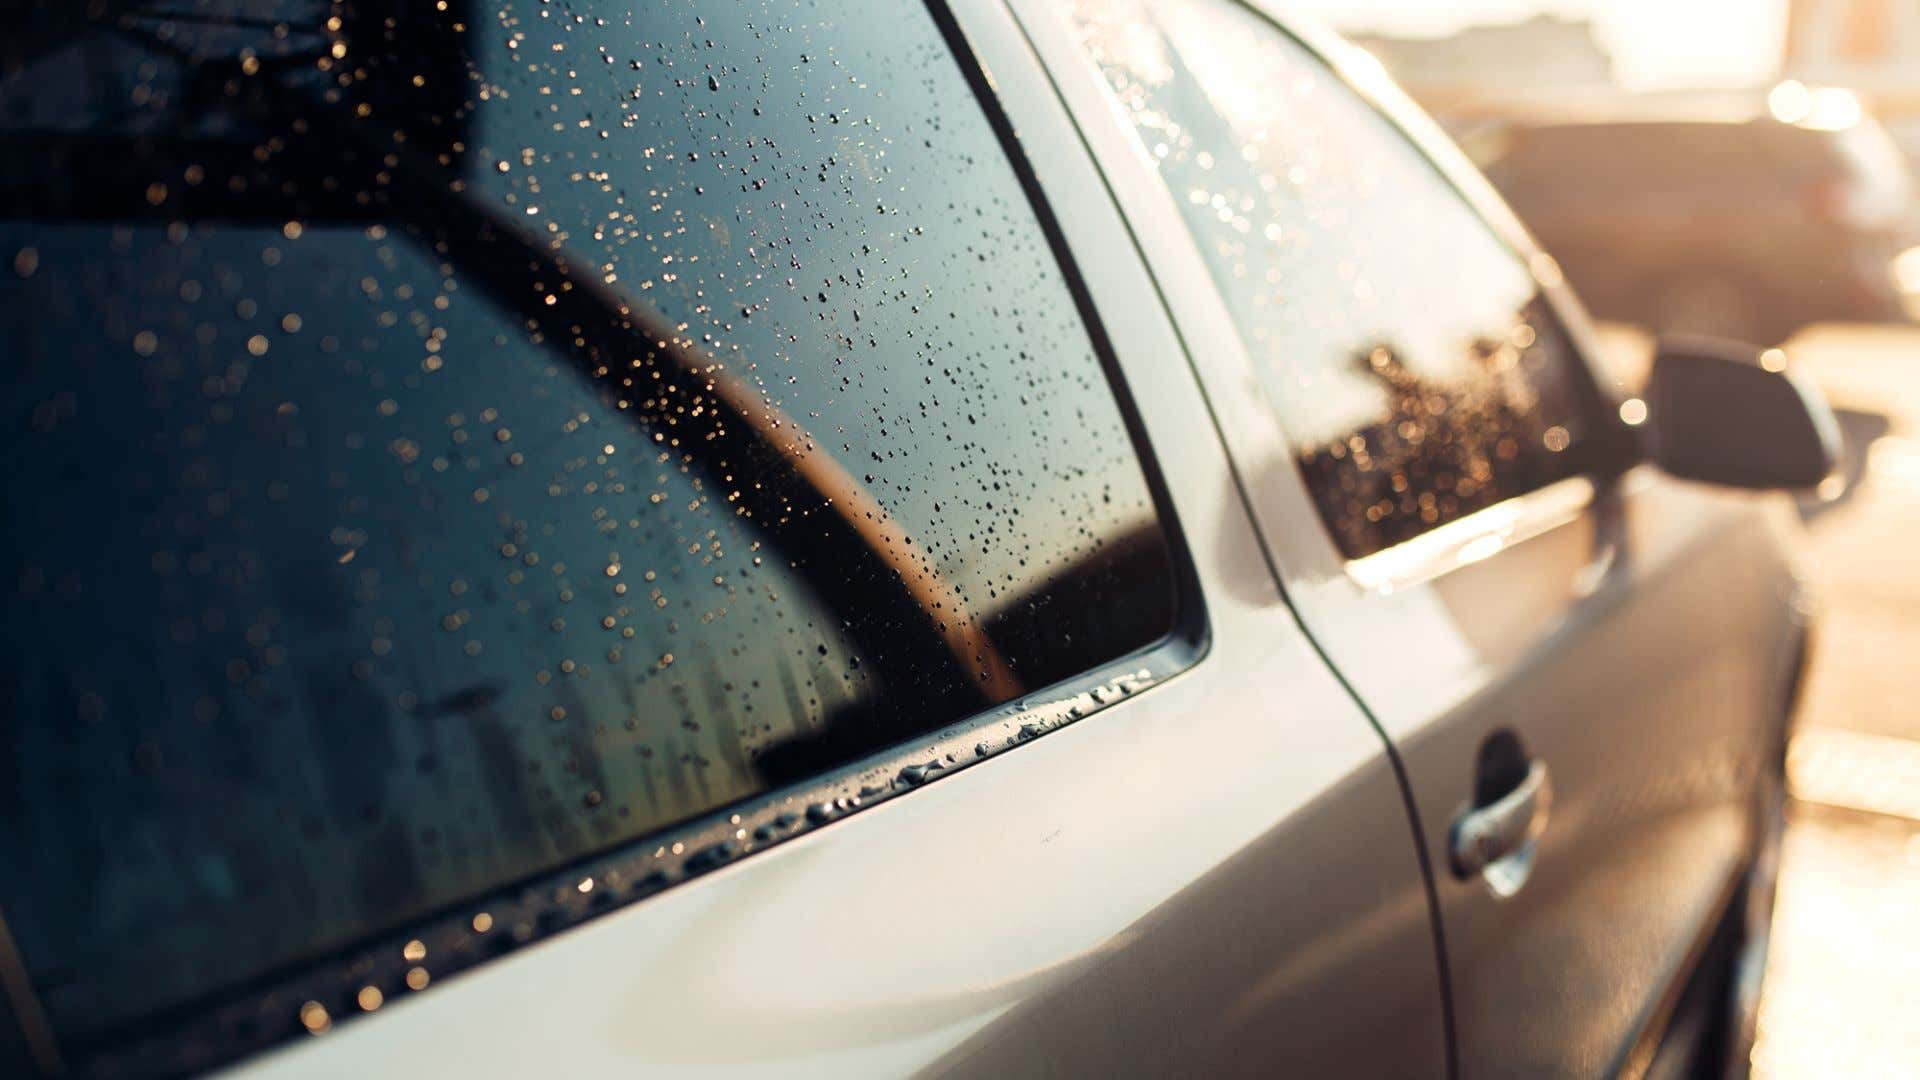 Car Window Care: Tips And Tricks For Taking Care Of Your Car's Windows